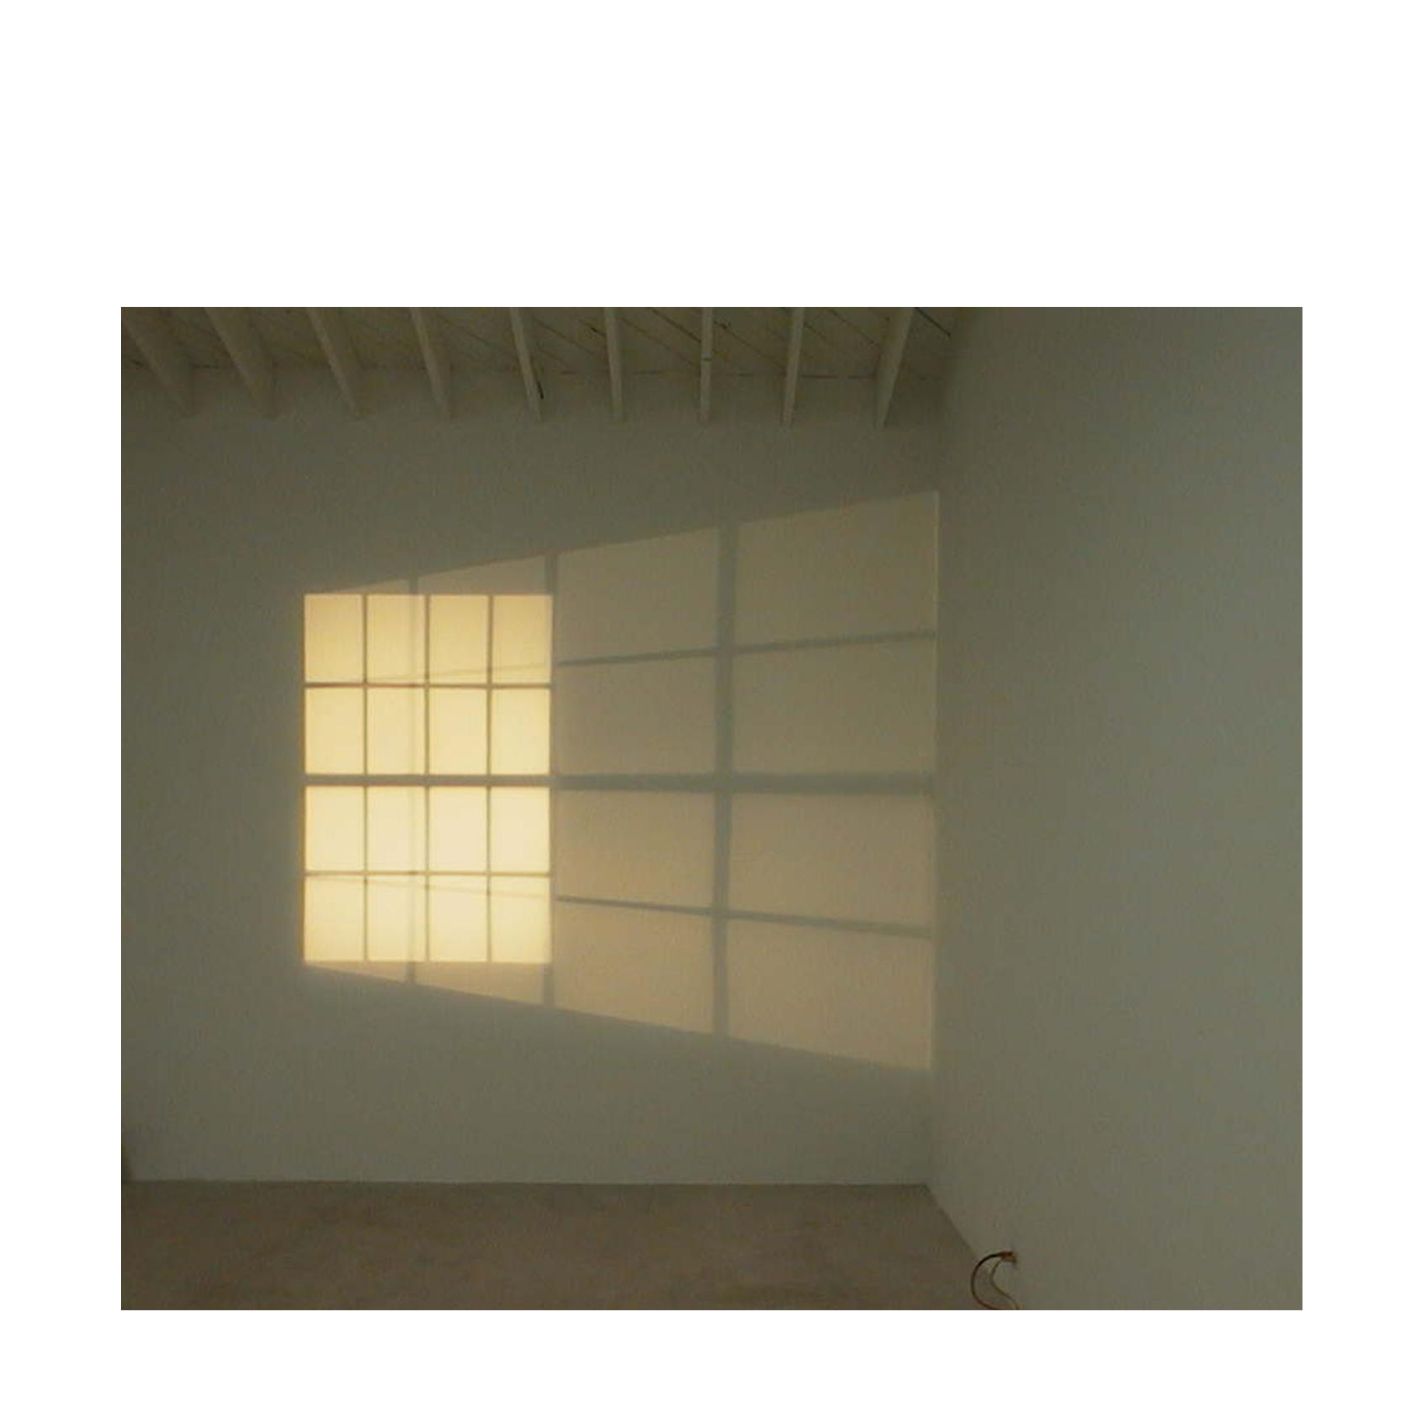 Olafur Eliasson, Double double hung window (1999)